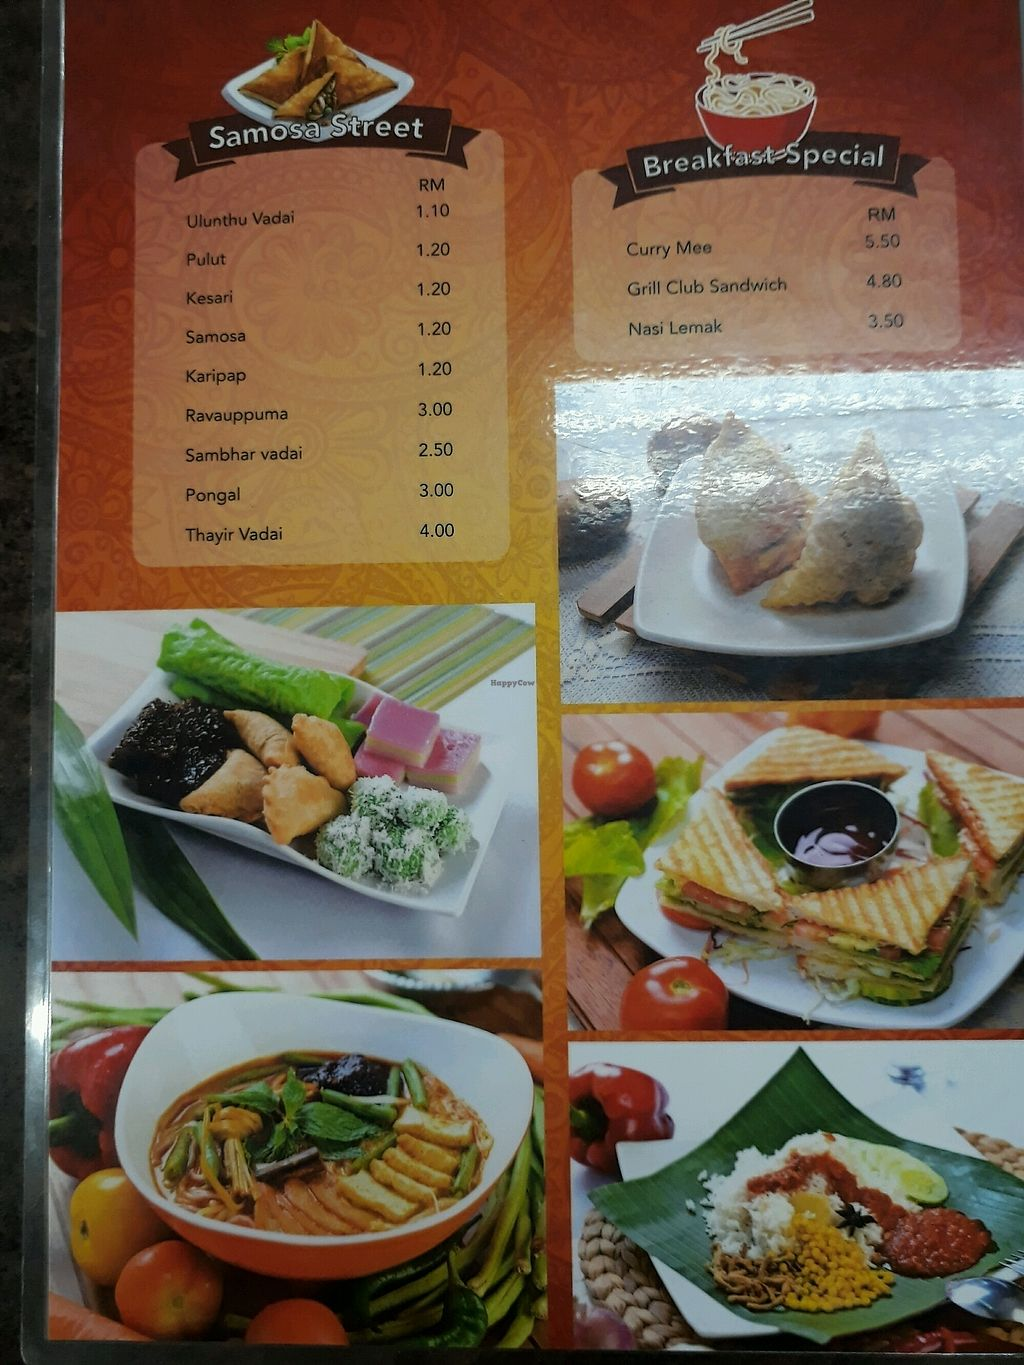 """Photo of Thali NR Sweets Cafe  by <a href=""""/members/profile/LilacHippy"""">LilacHippy</a> <br/>Special Dishes  <br/> October 28, 2017  - <a href='/contact/abuse/image/36947/319584'>Report</a>"""